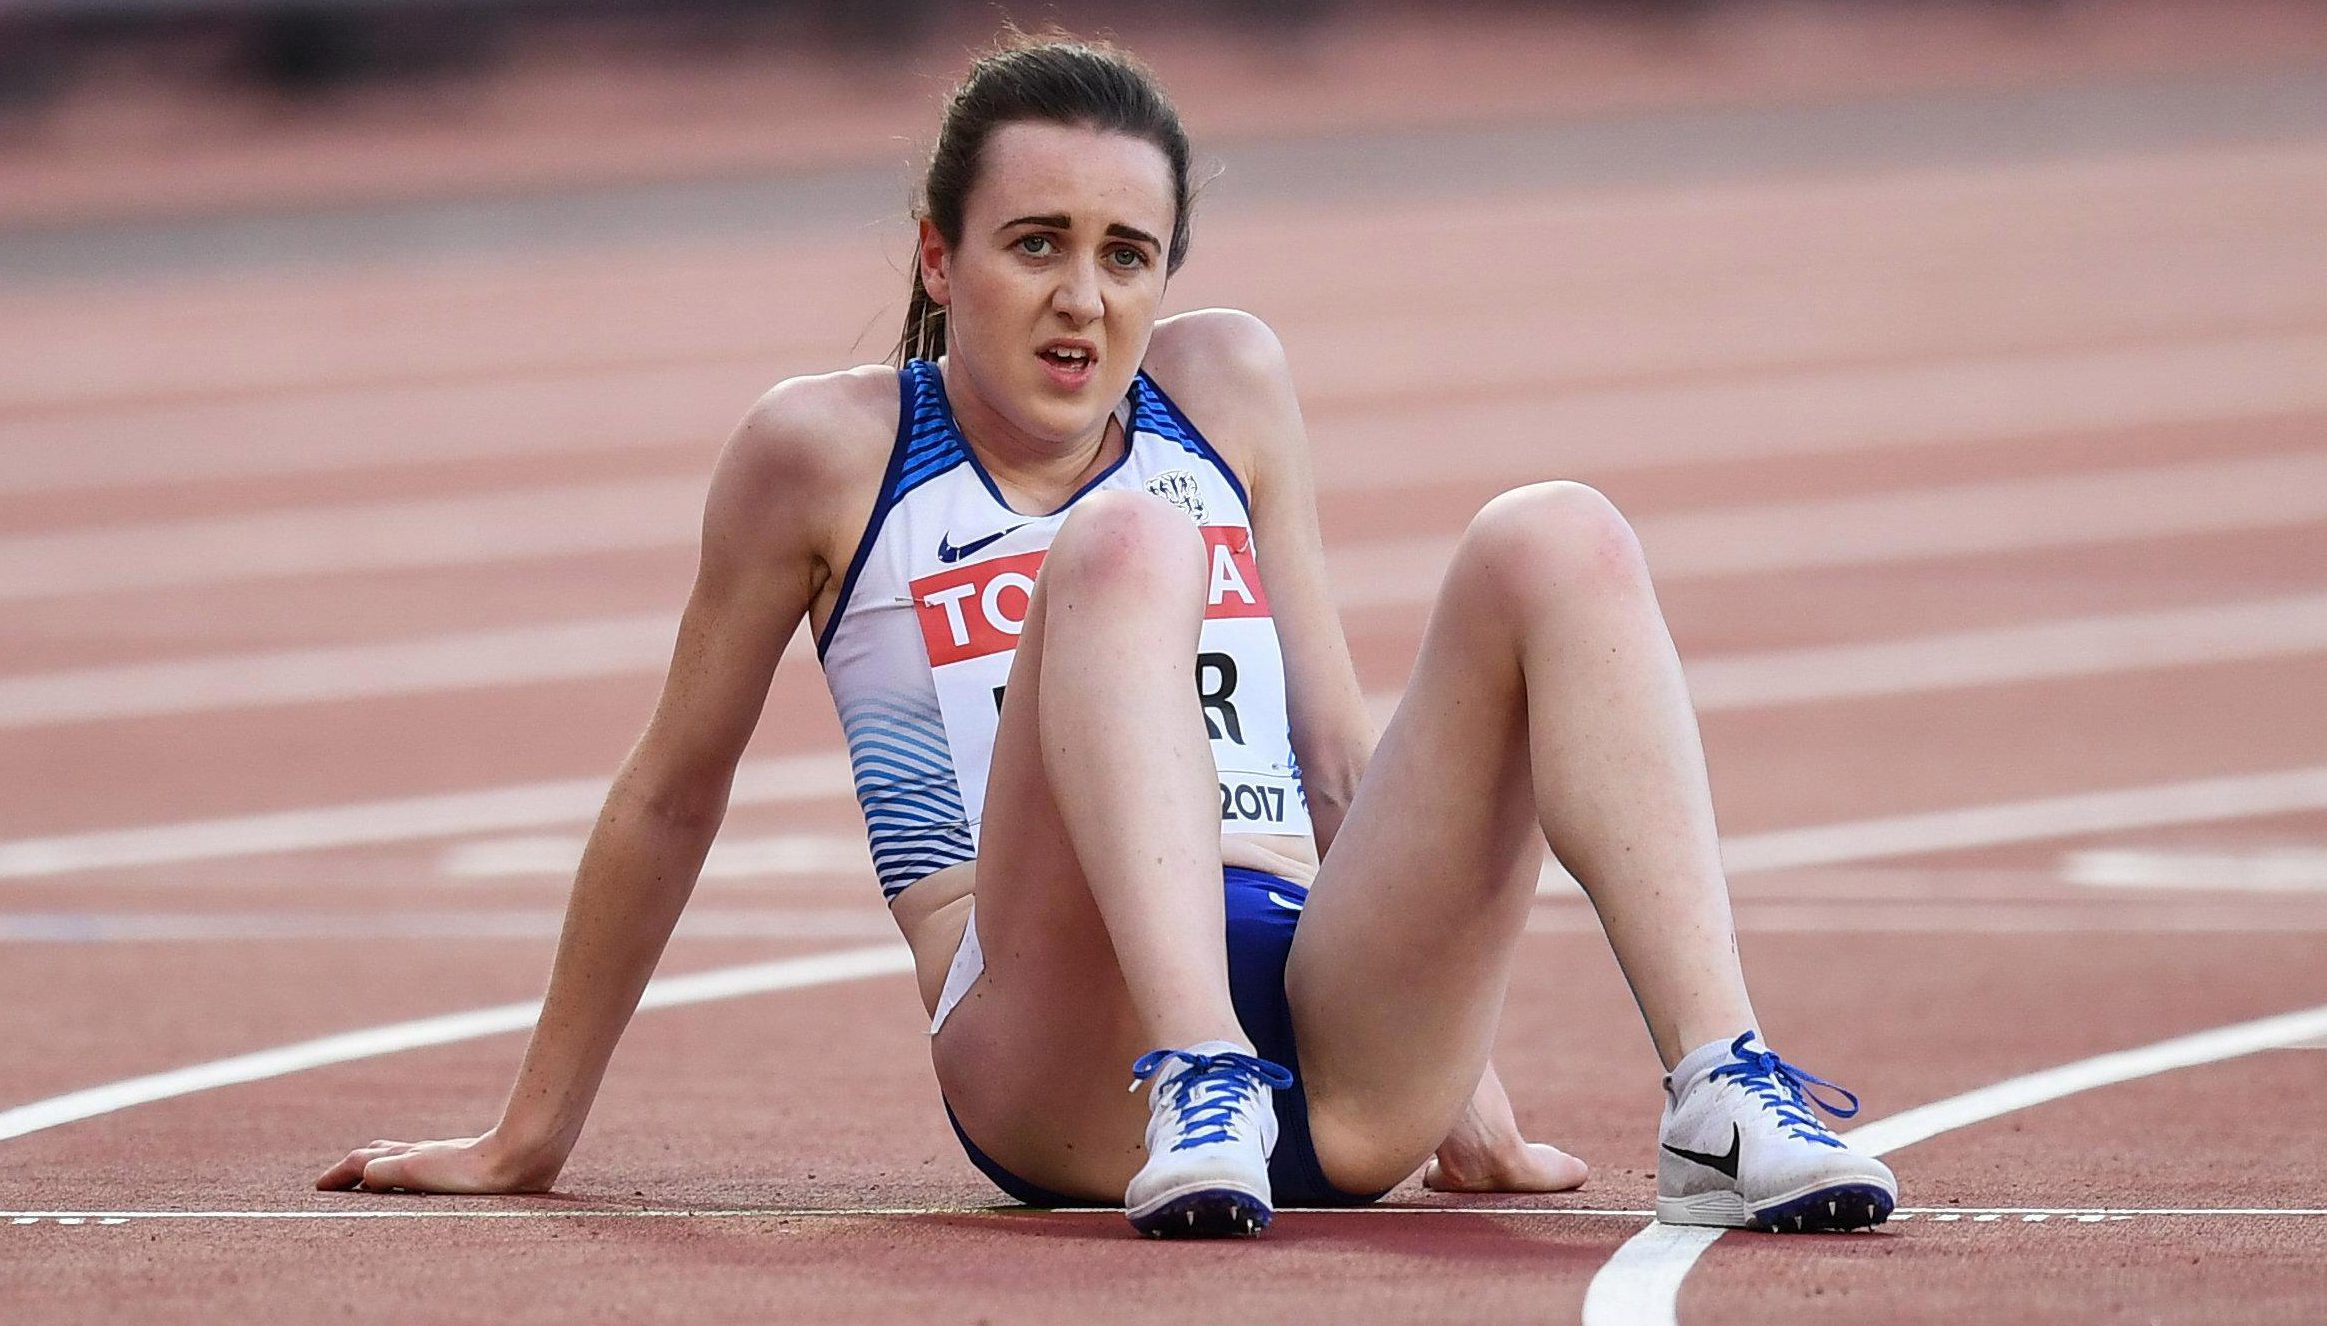 Laura Muir looked shattered at the end of her heat but she's in the final